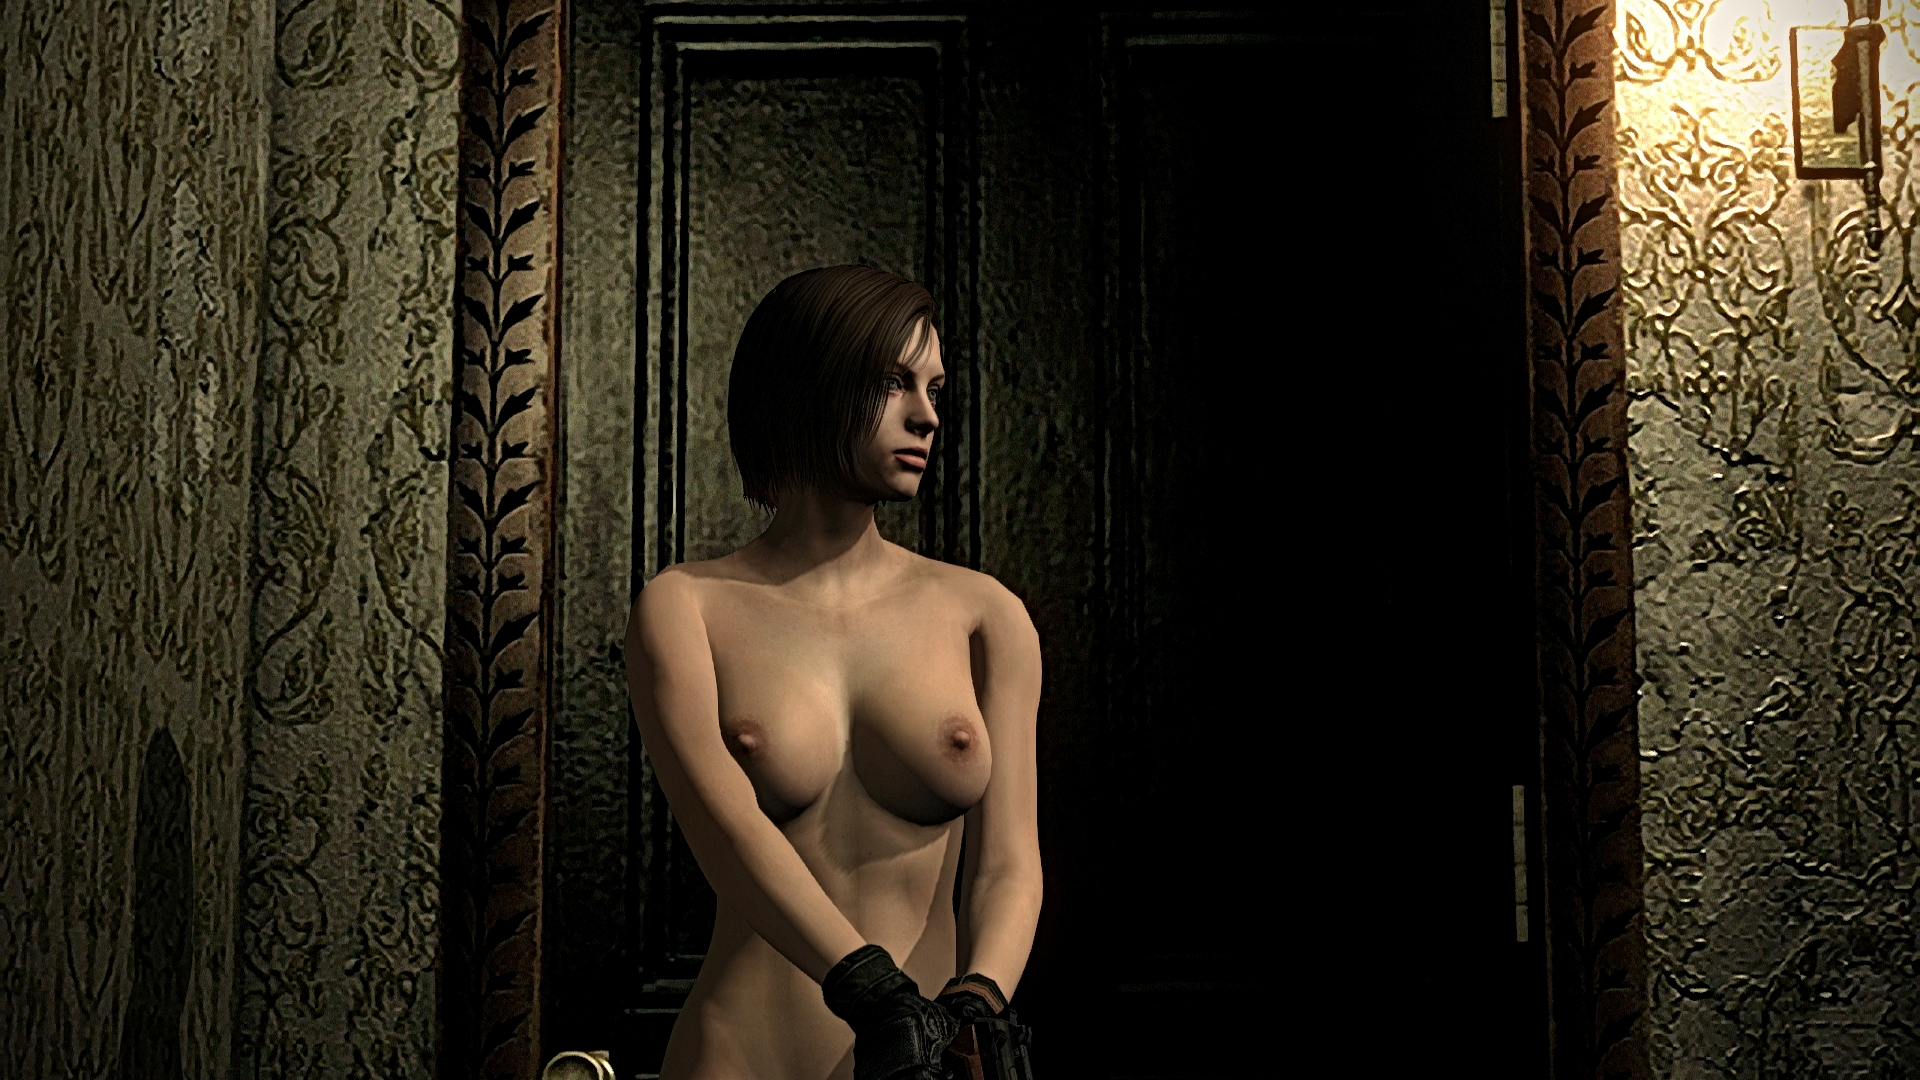 Uncharted nude mod erotica videos